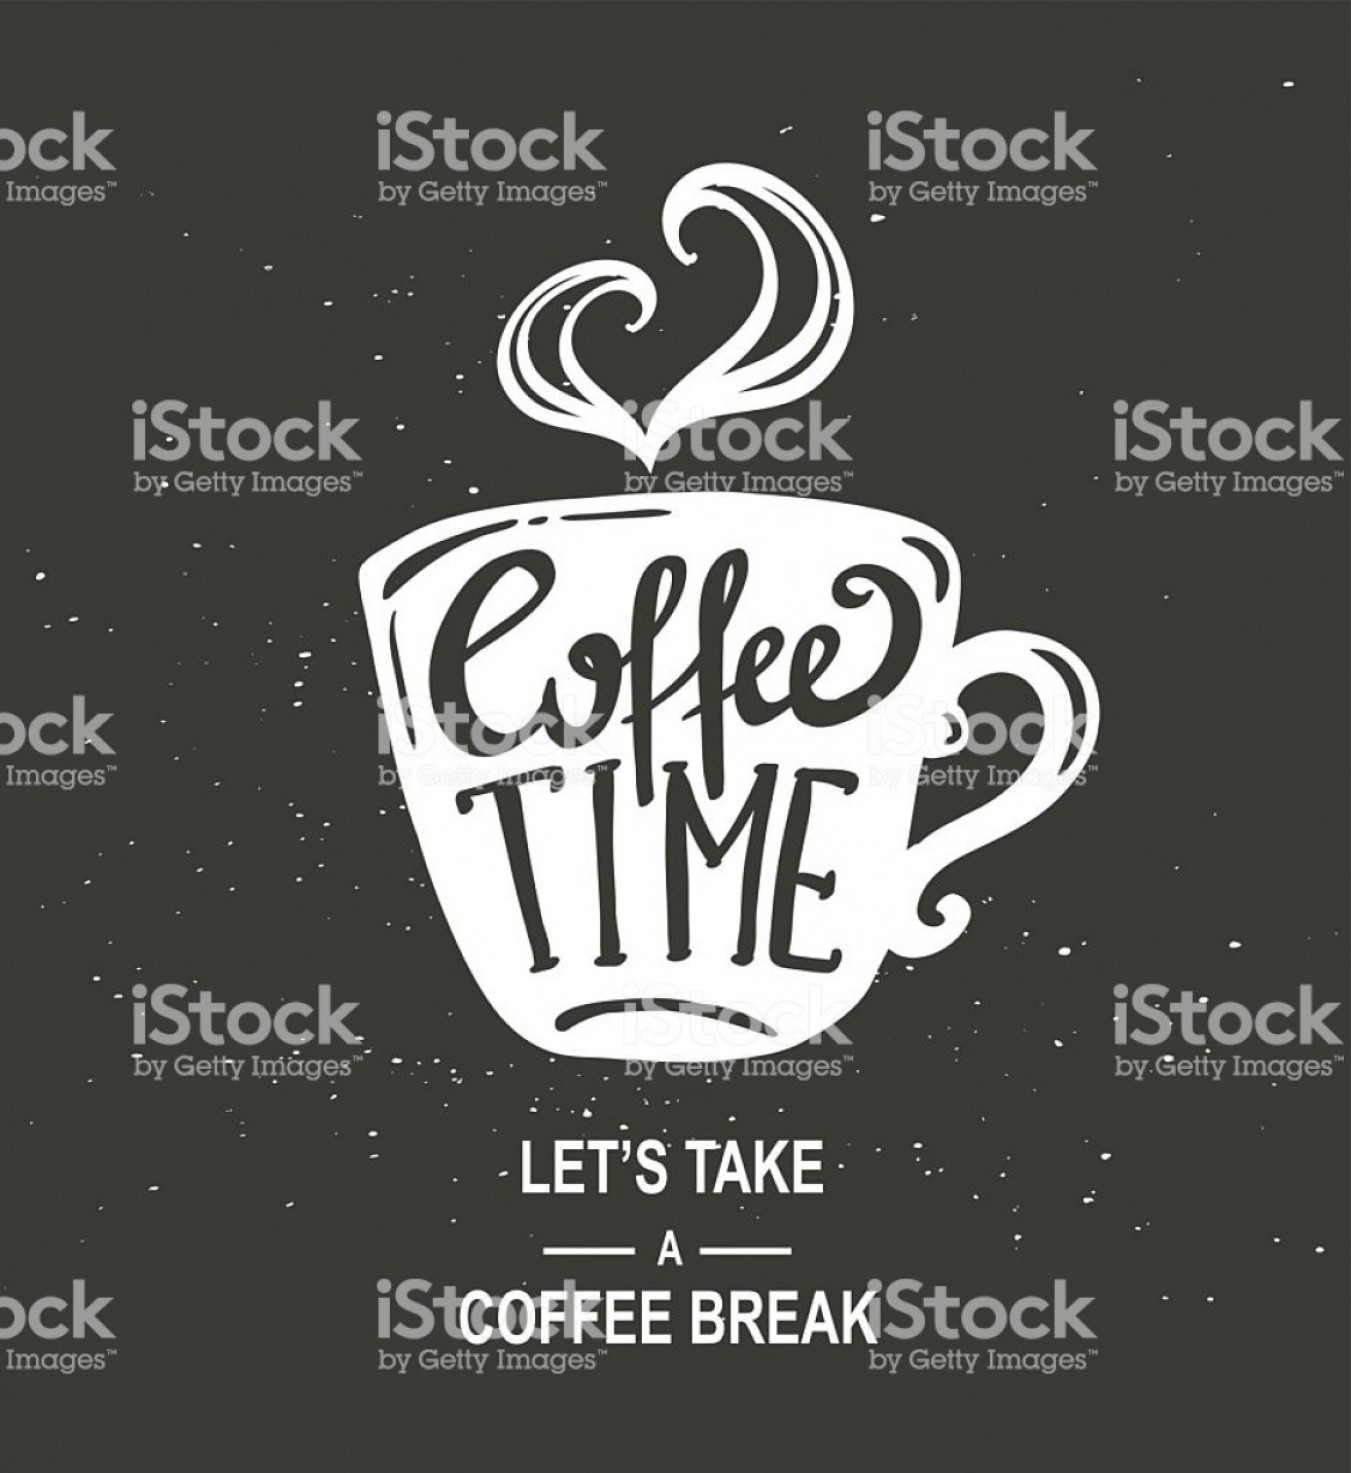 Times-Picayune Vector Art: Coffee Time Hipster Vintage Stylized Coffee Paper Gm